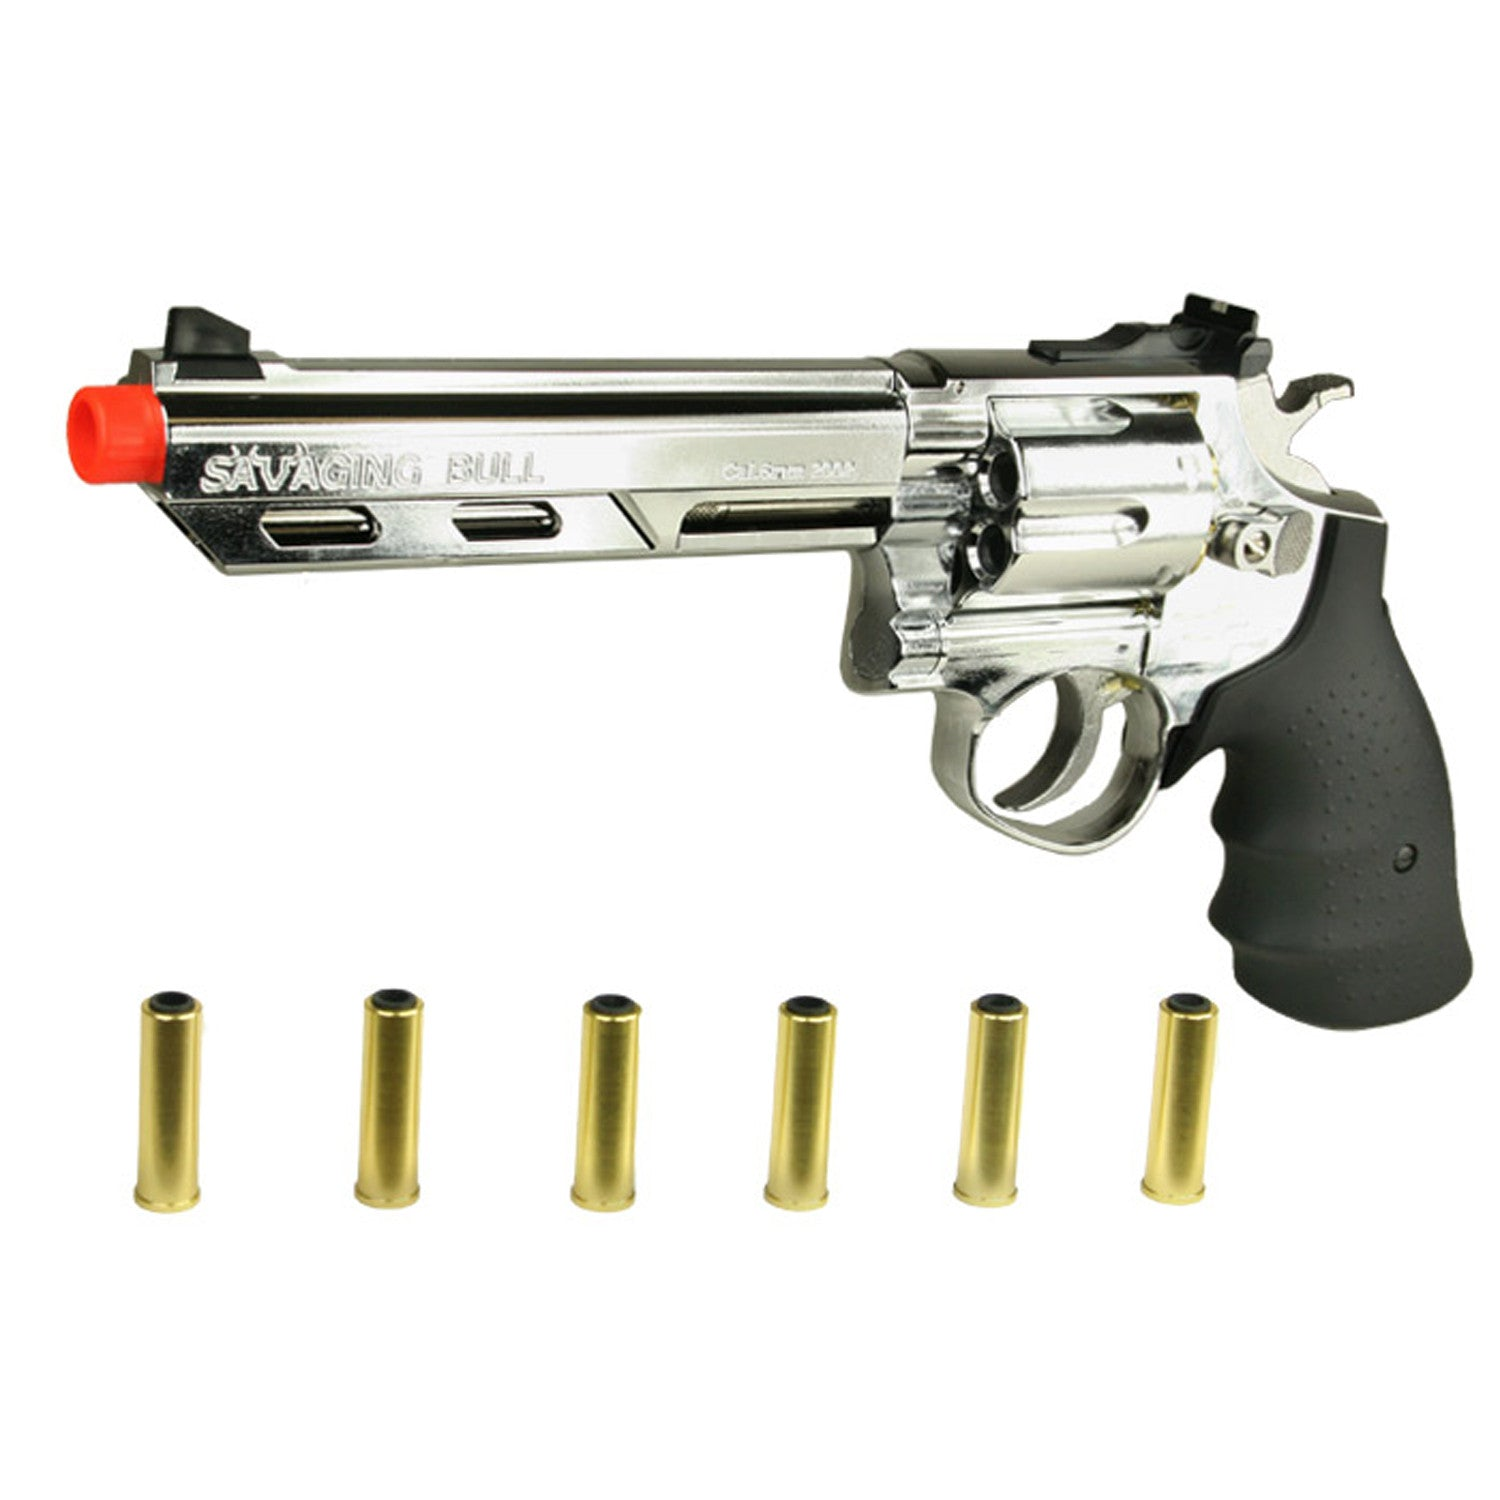 "HFC 6 "" SAVAGING BULL REVOLVER - •Muzzle Velocity: 280FPS •Revolver Capacity: 6, 1 BB for shell •Gas Type: Green Gas"